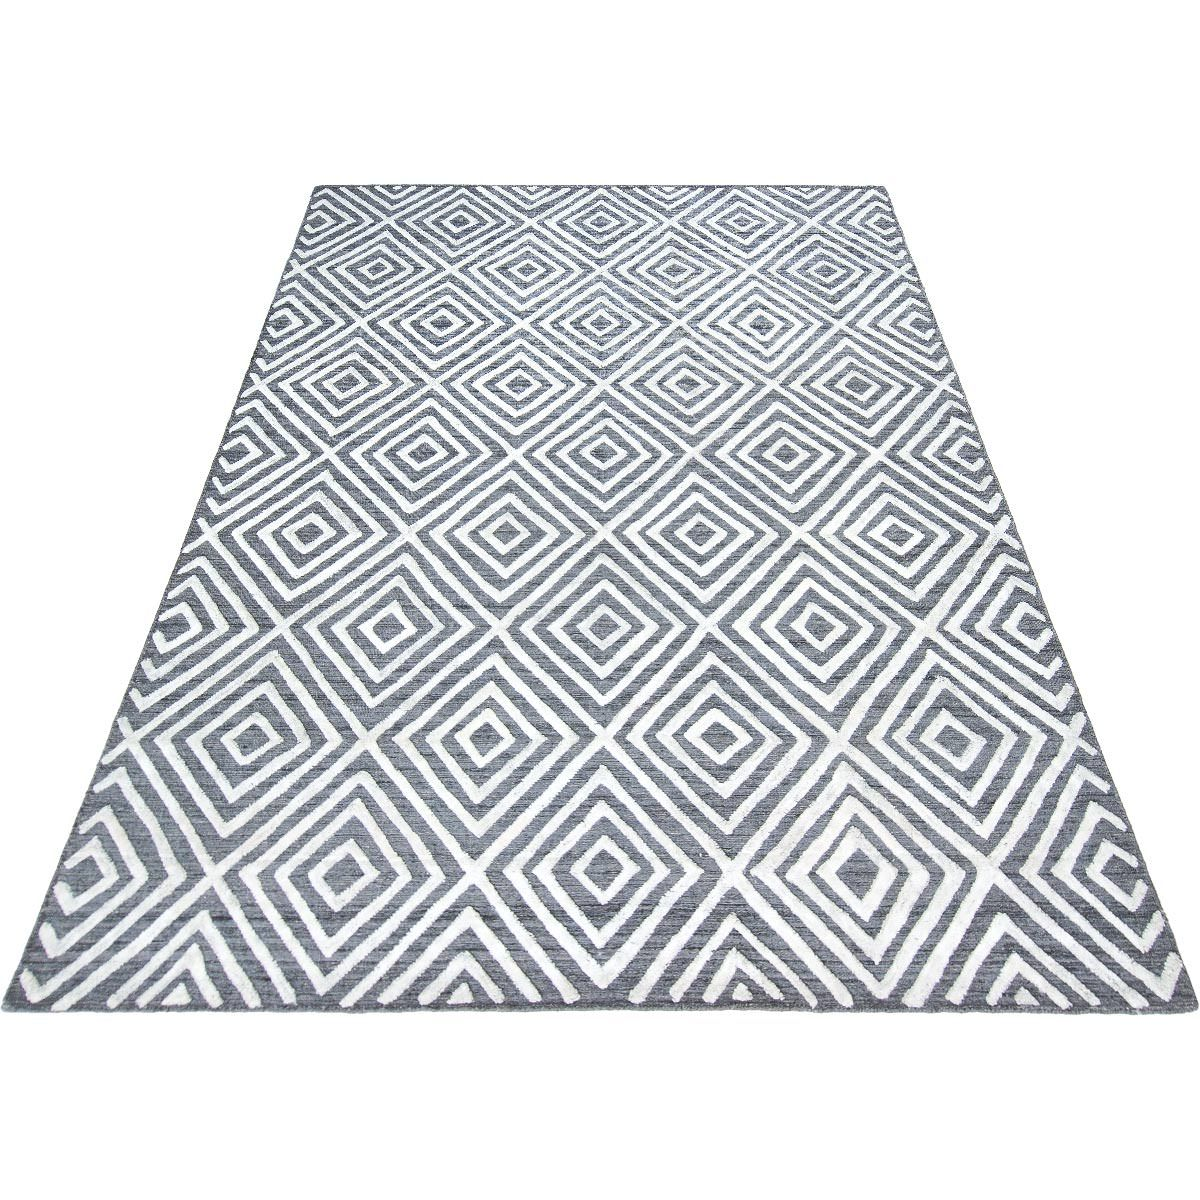 Zara Rug 01 Grey/White 6